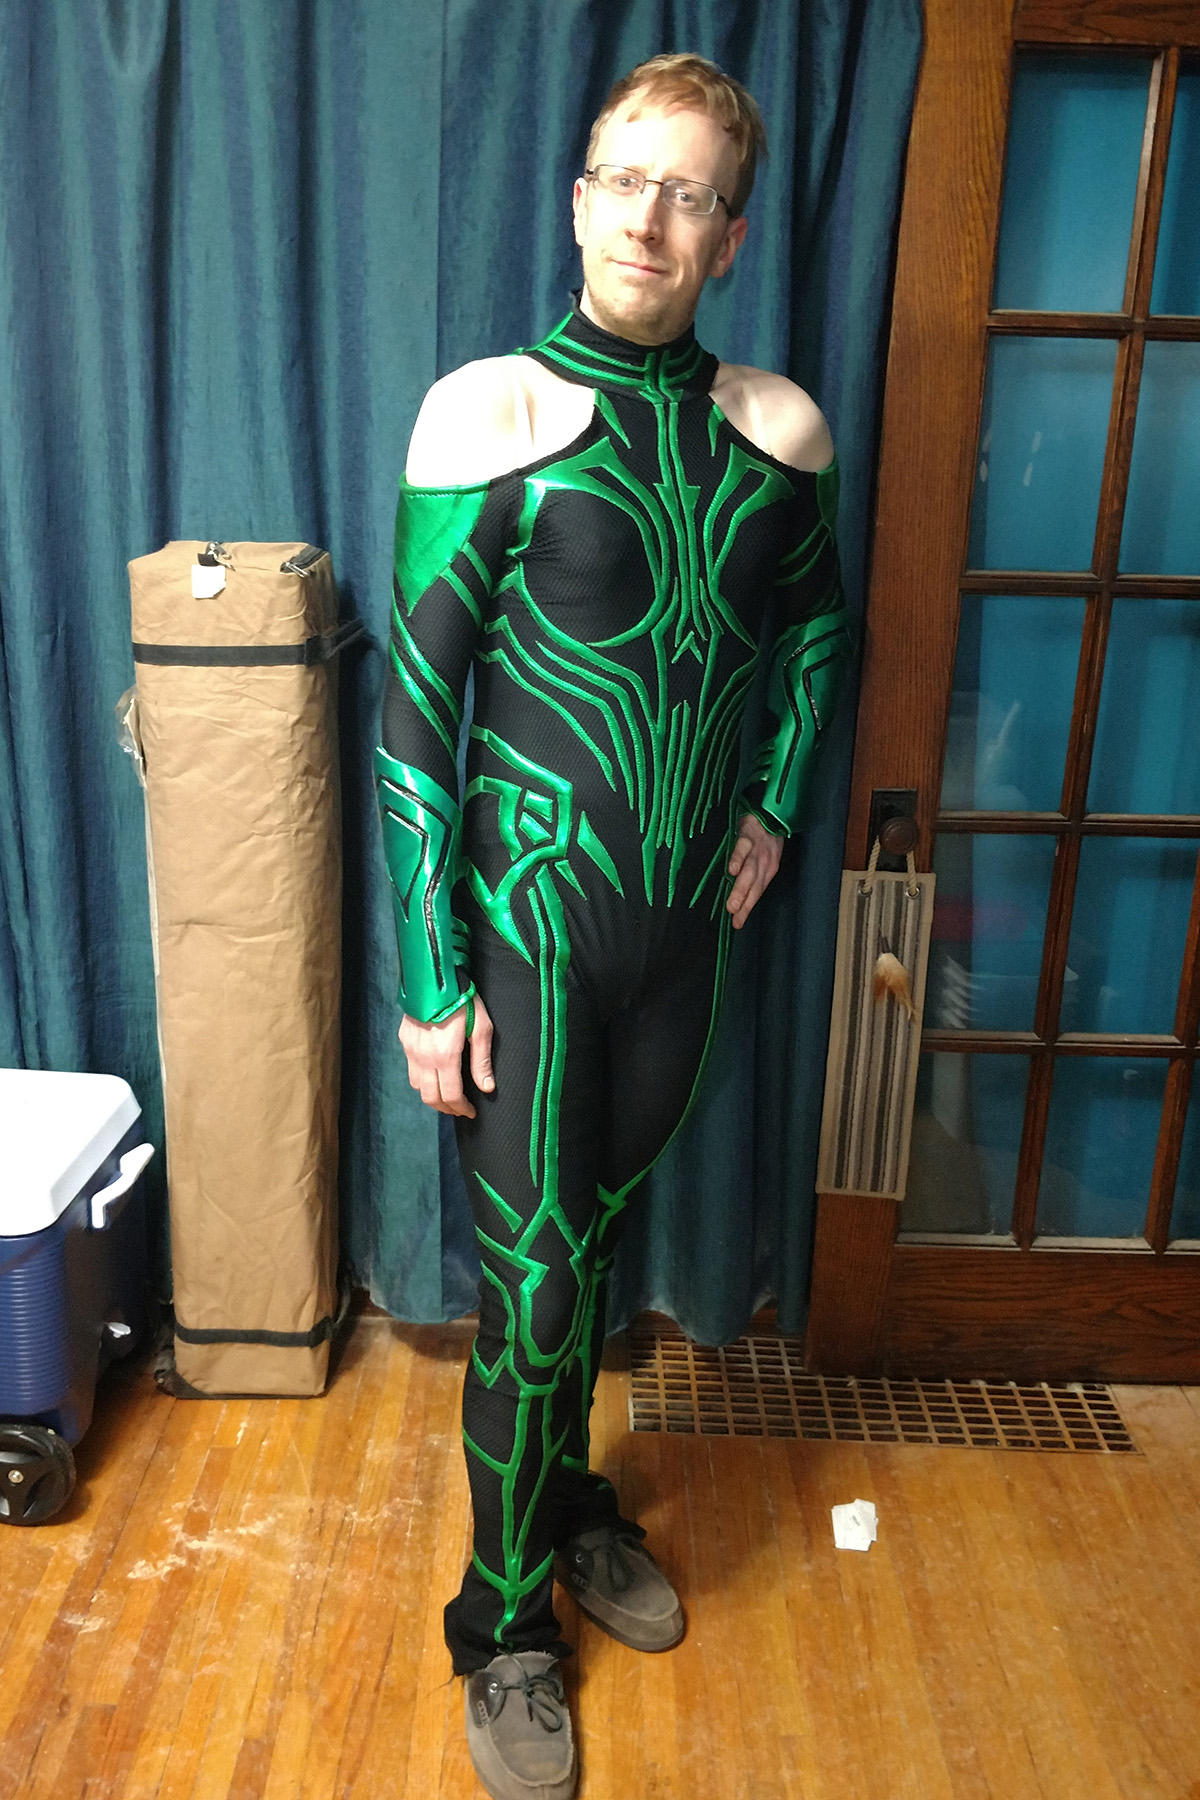 A front view of a blonde man wearing an MCU Hela costume.